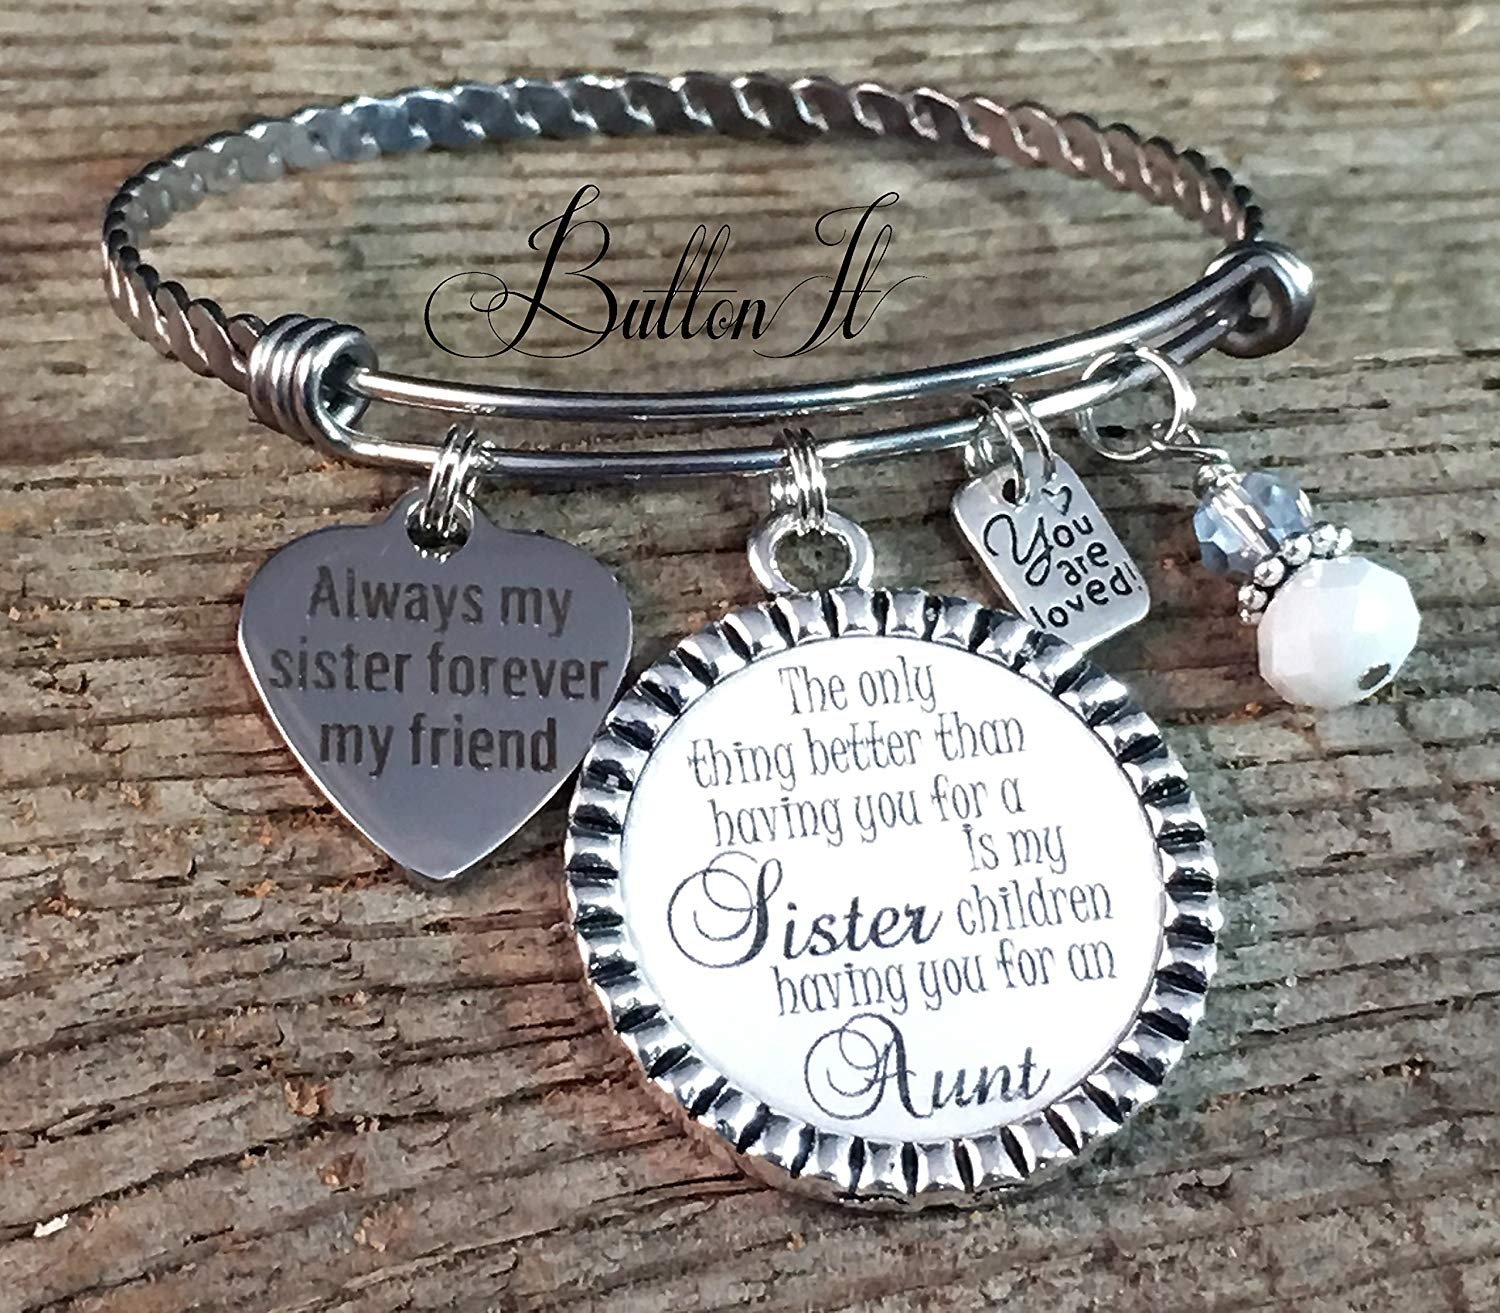 Get Quotations BANGLE Bracelet Sister Gift Aunt SISTER Jewelry Mothers